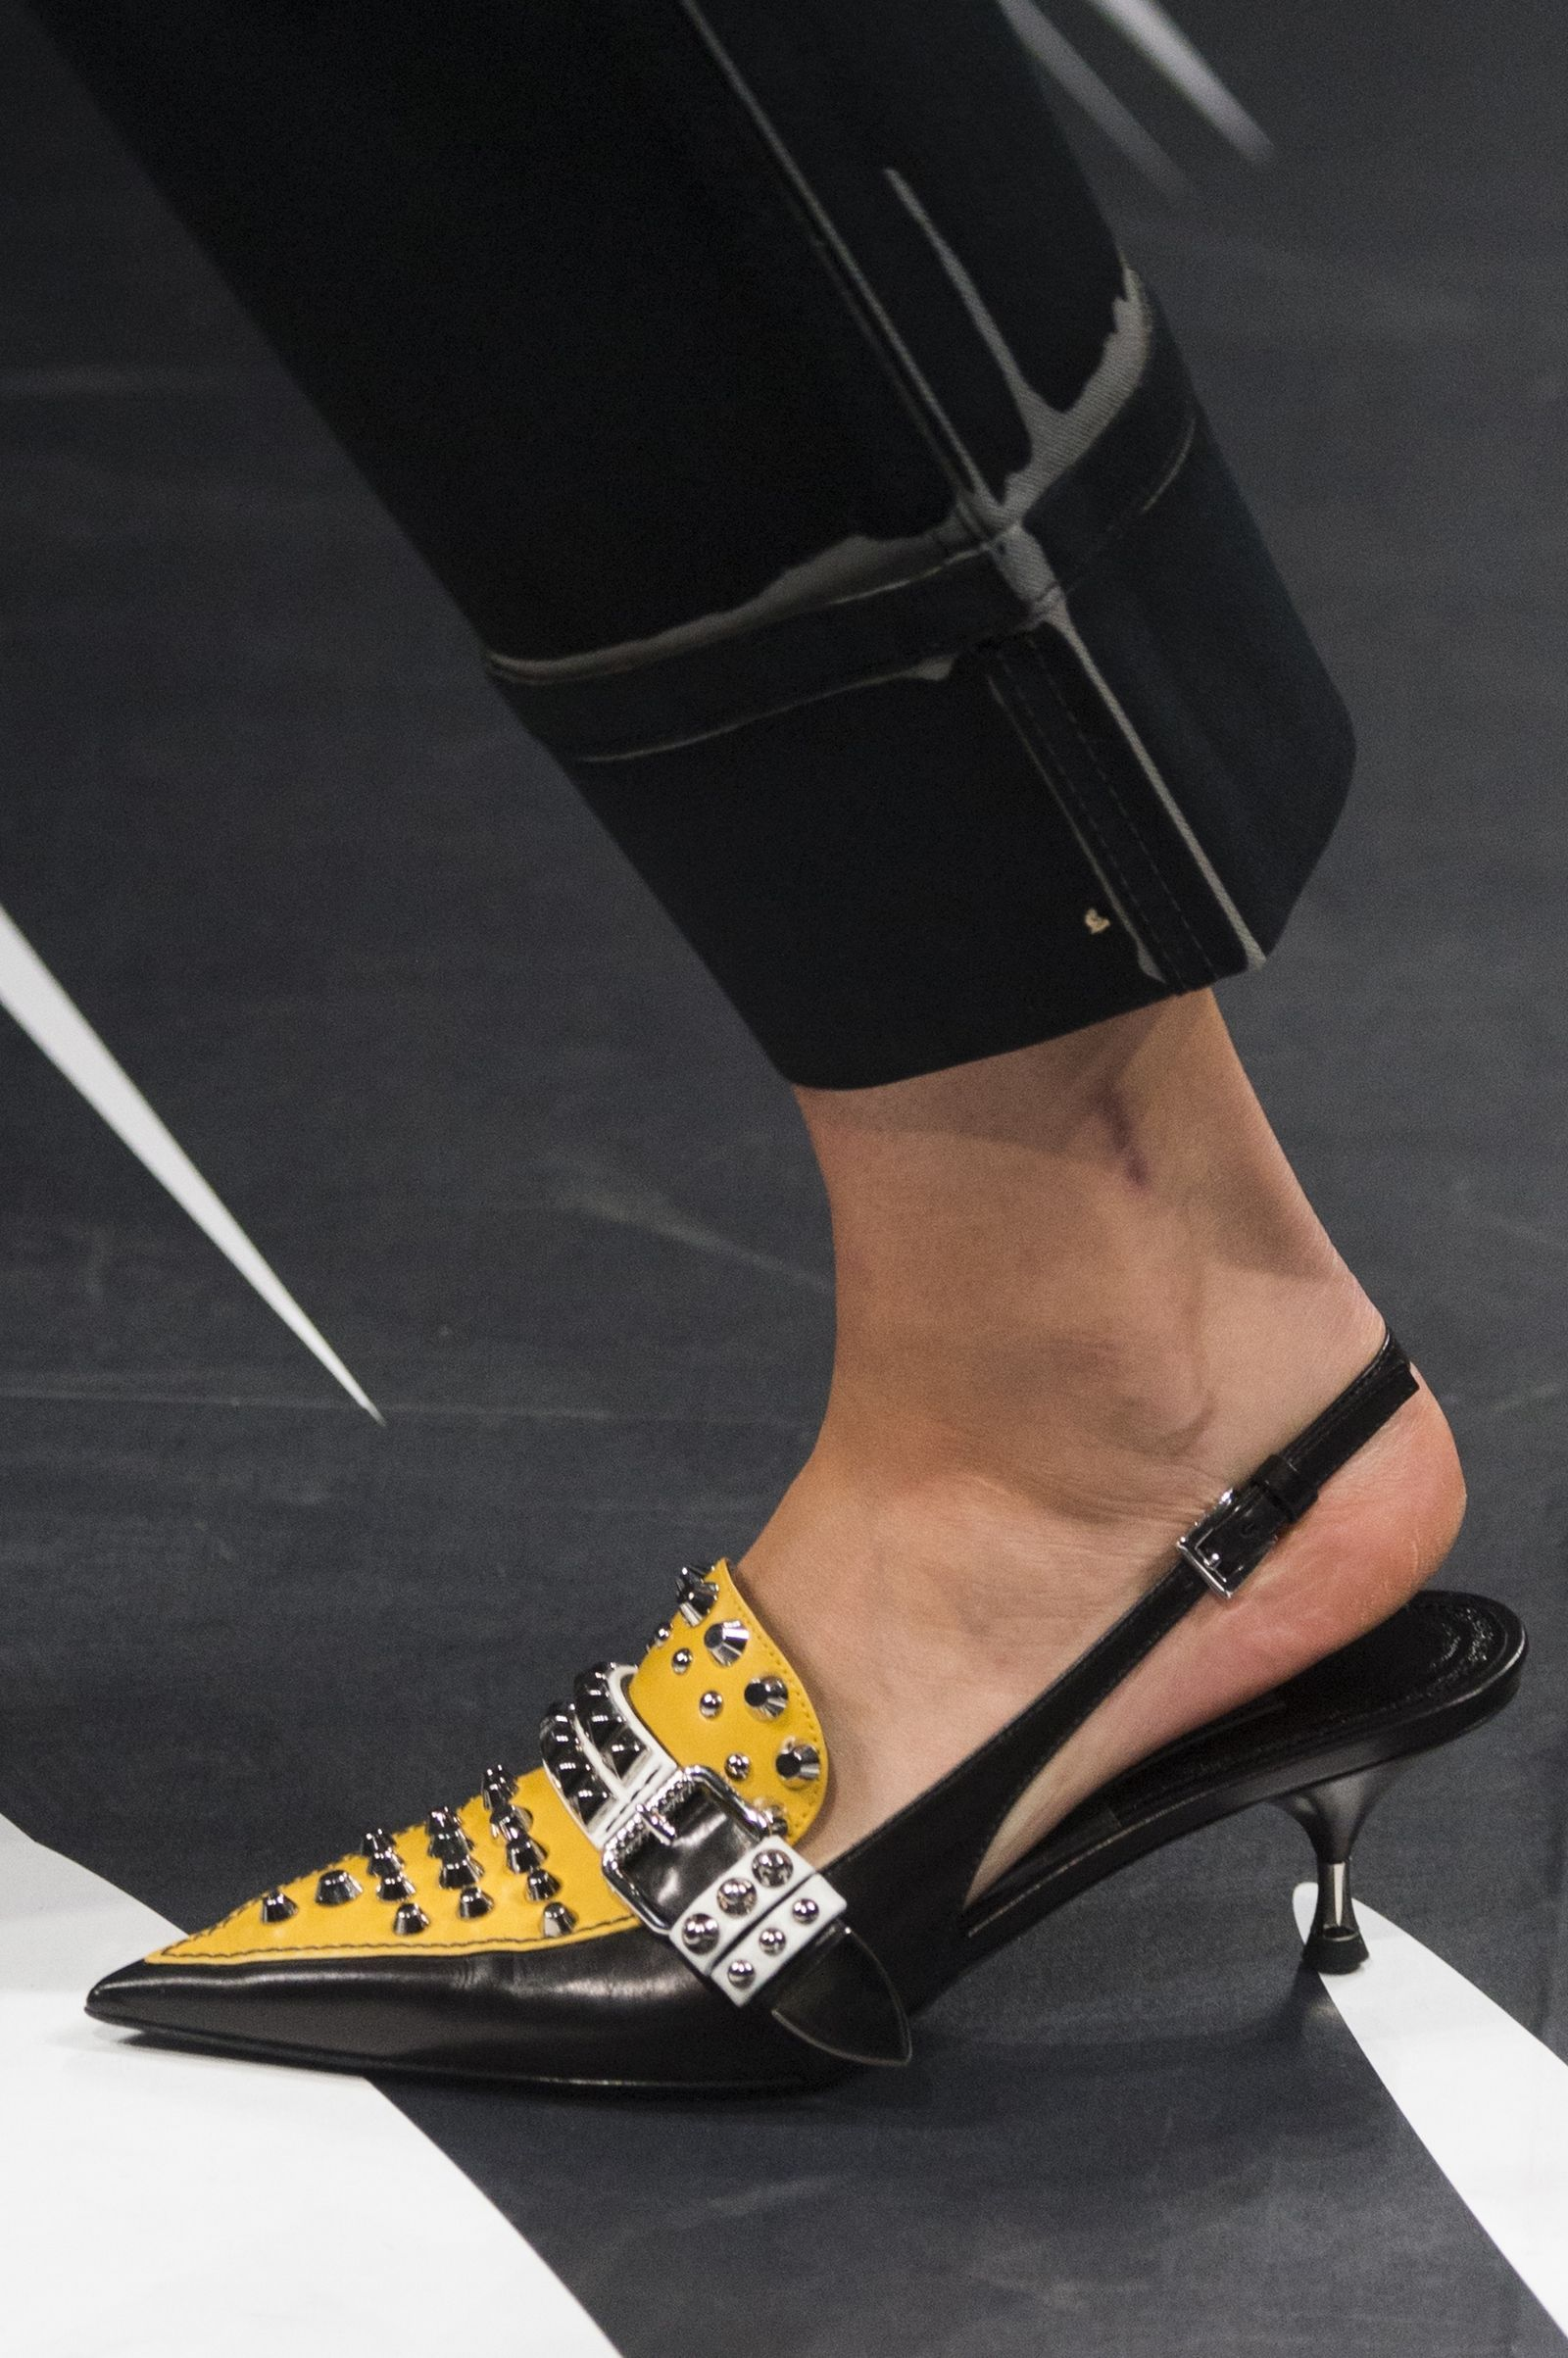 The Hottest Spring 2018 Shoes From The Runways